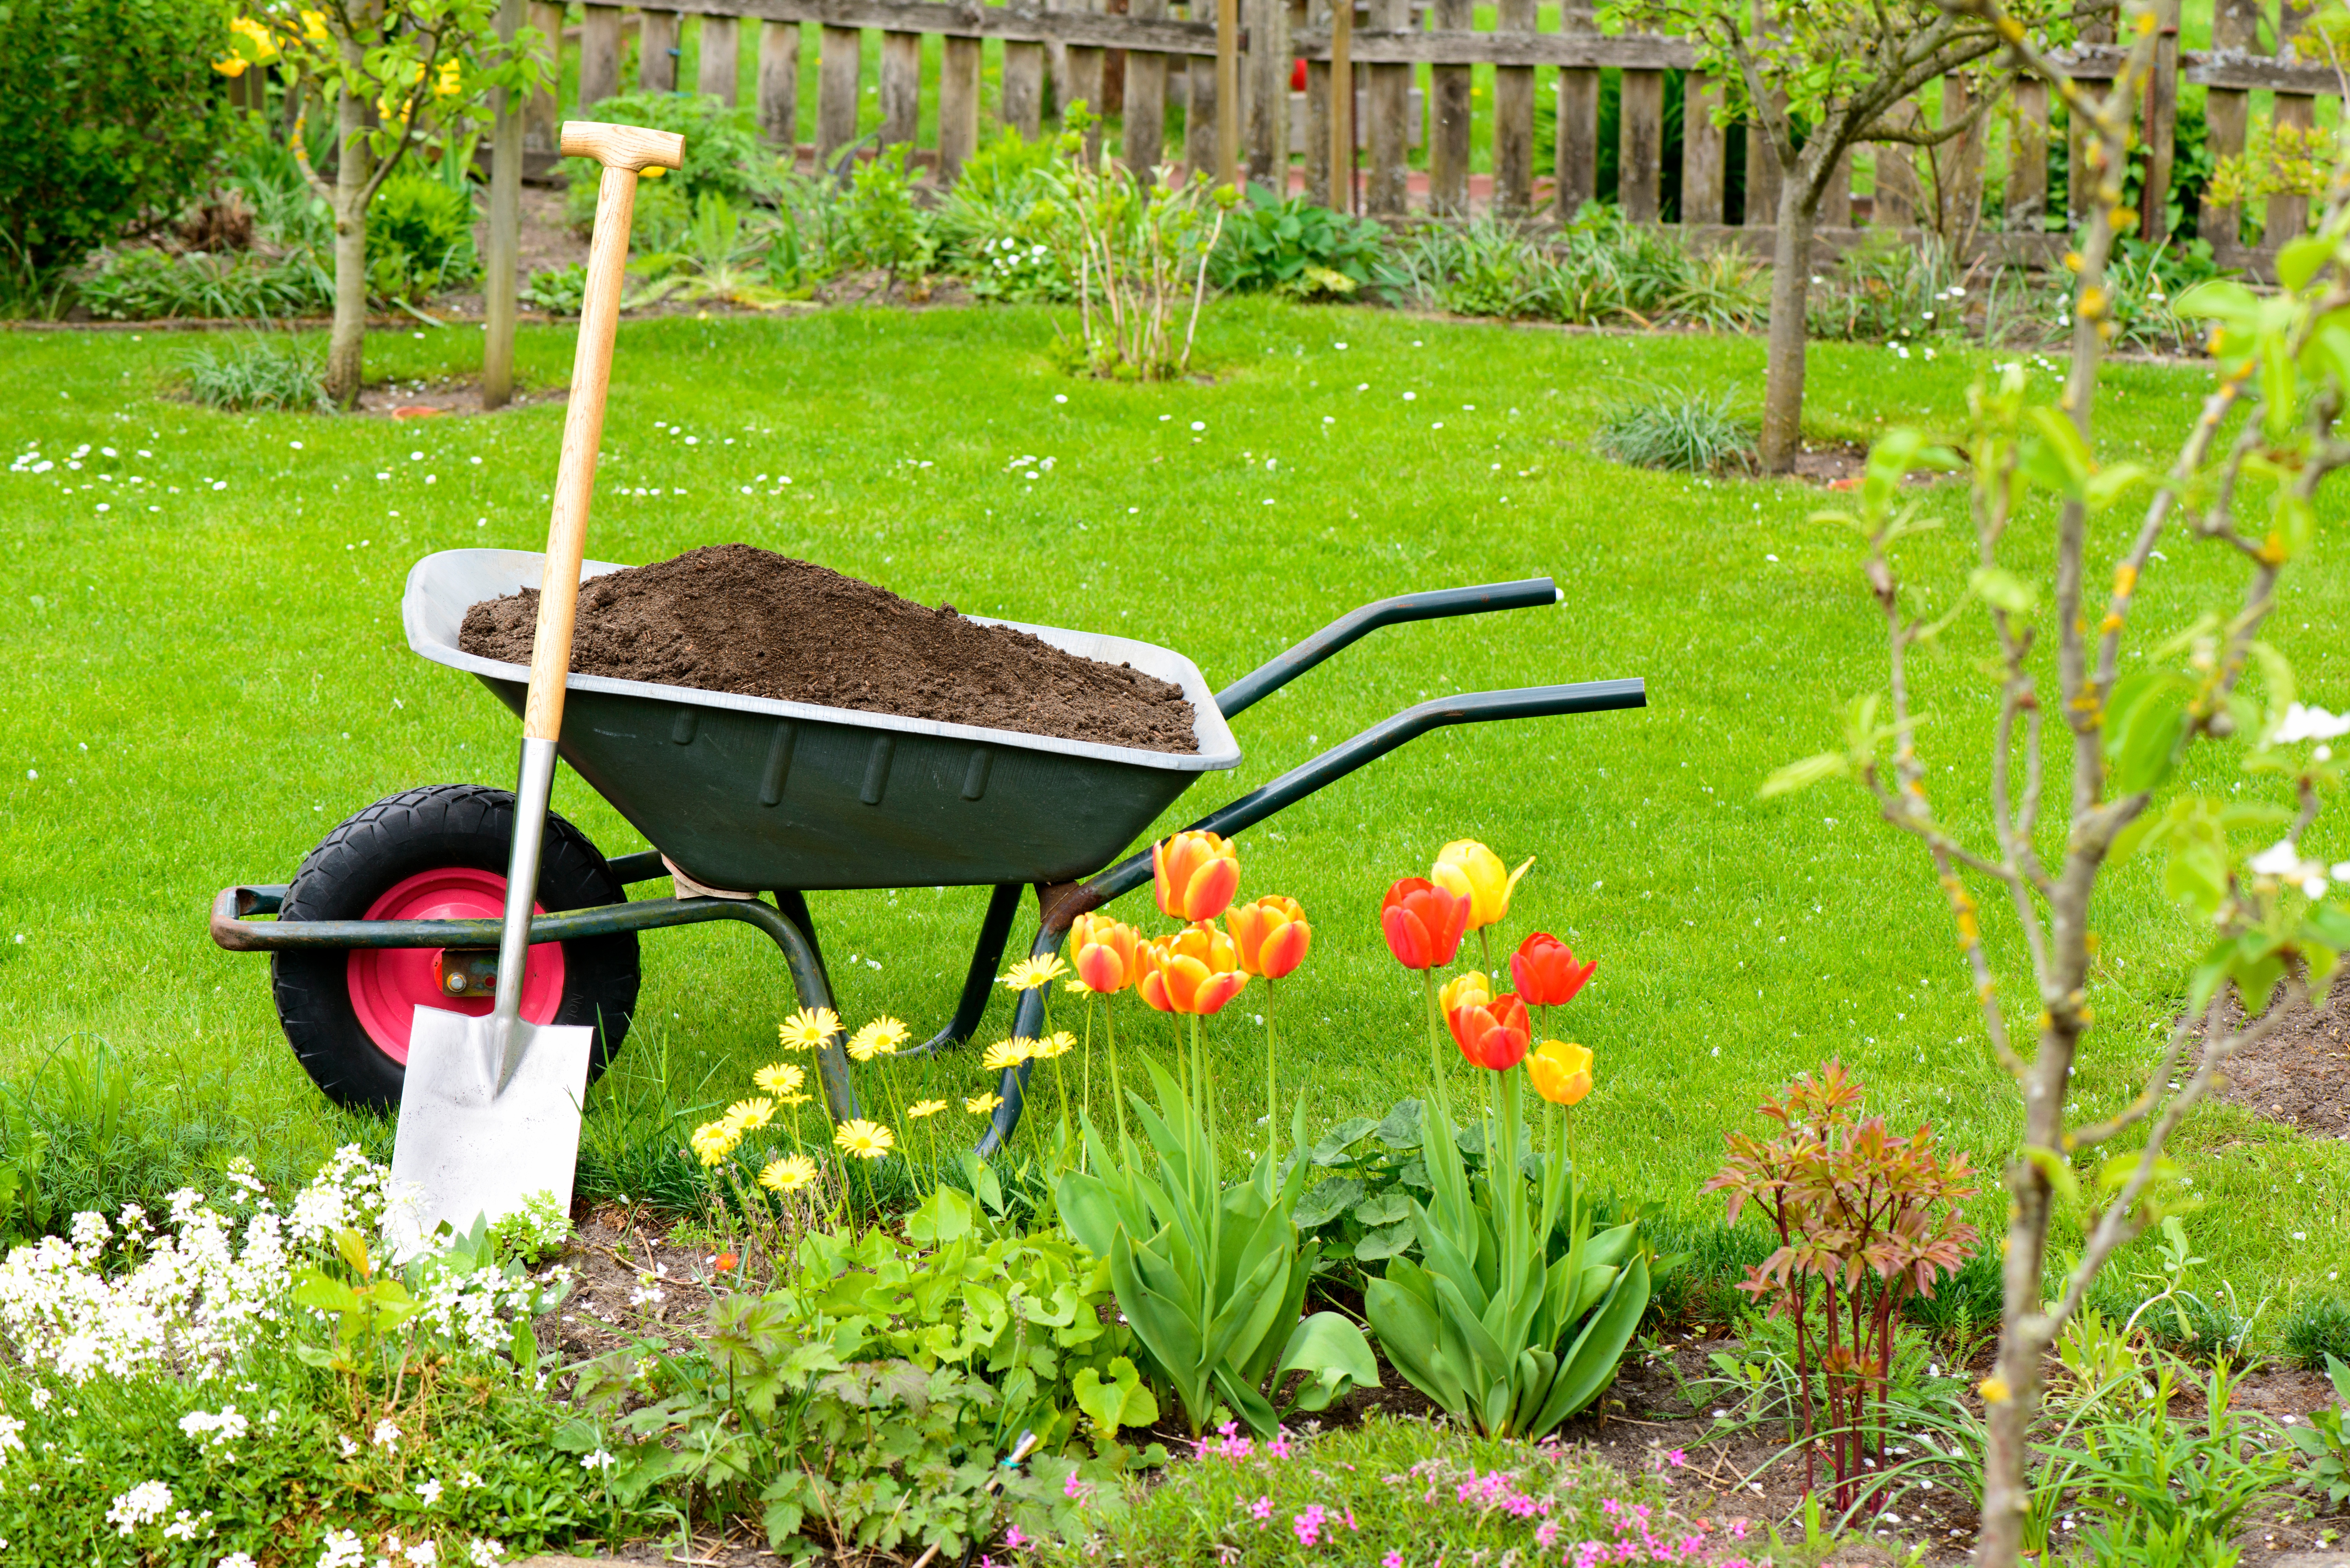 Up Your Home's Curb Appeal Without Upping Your Budget